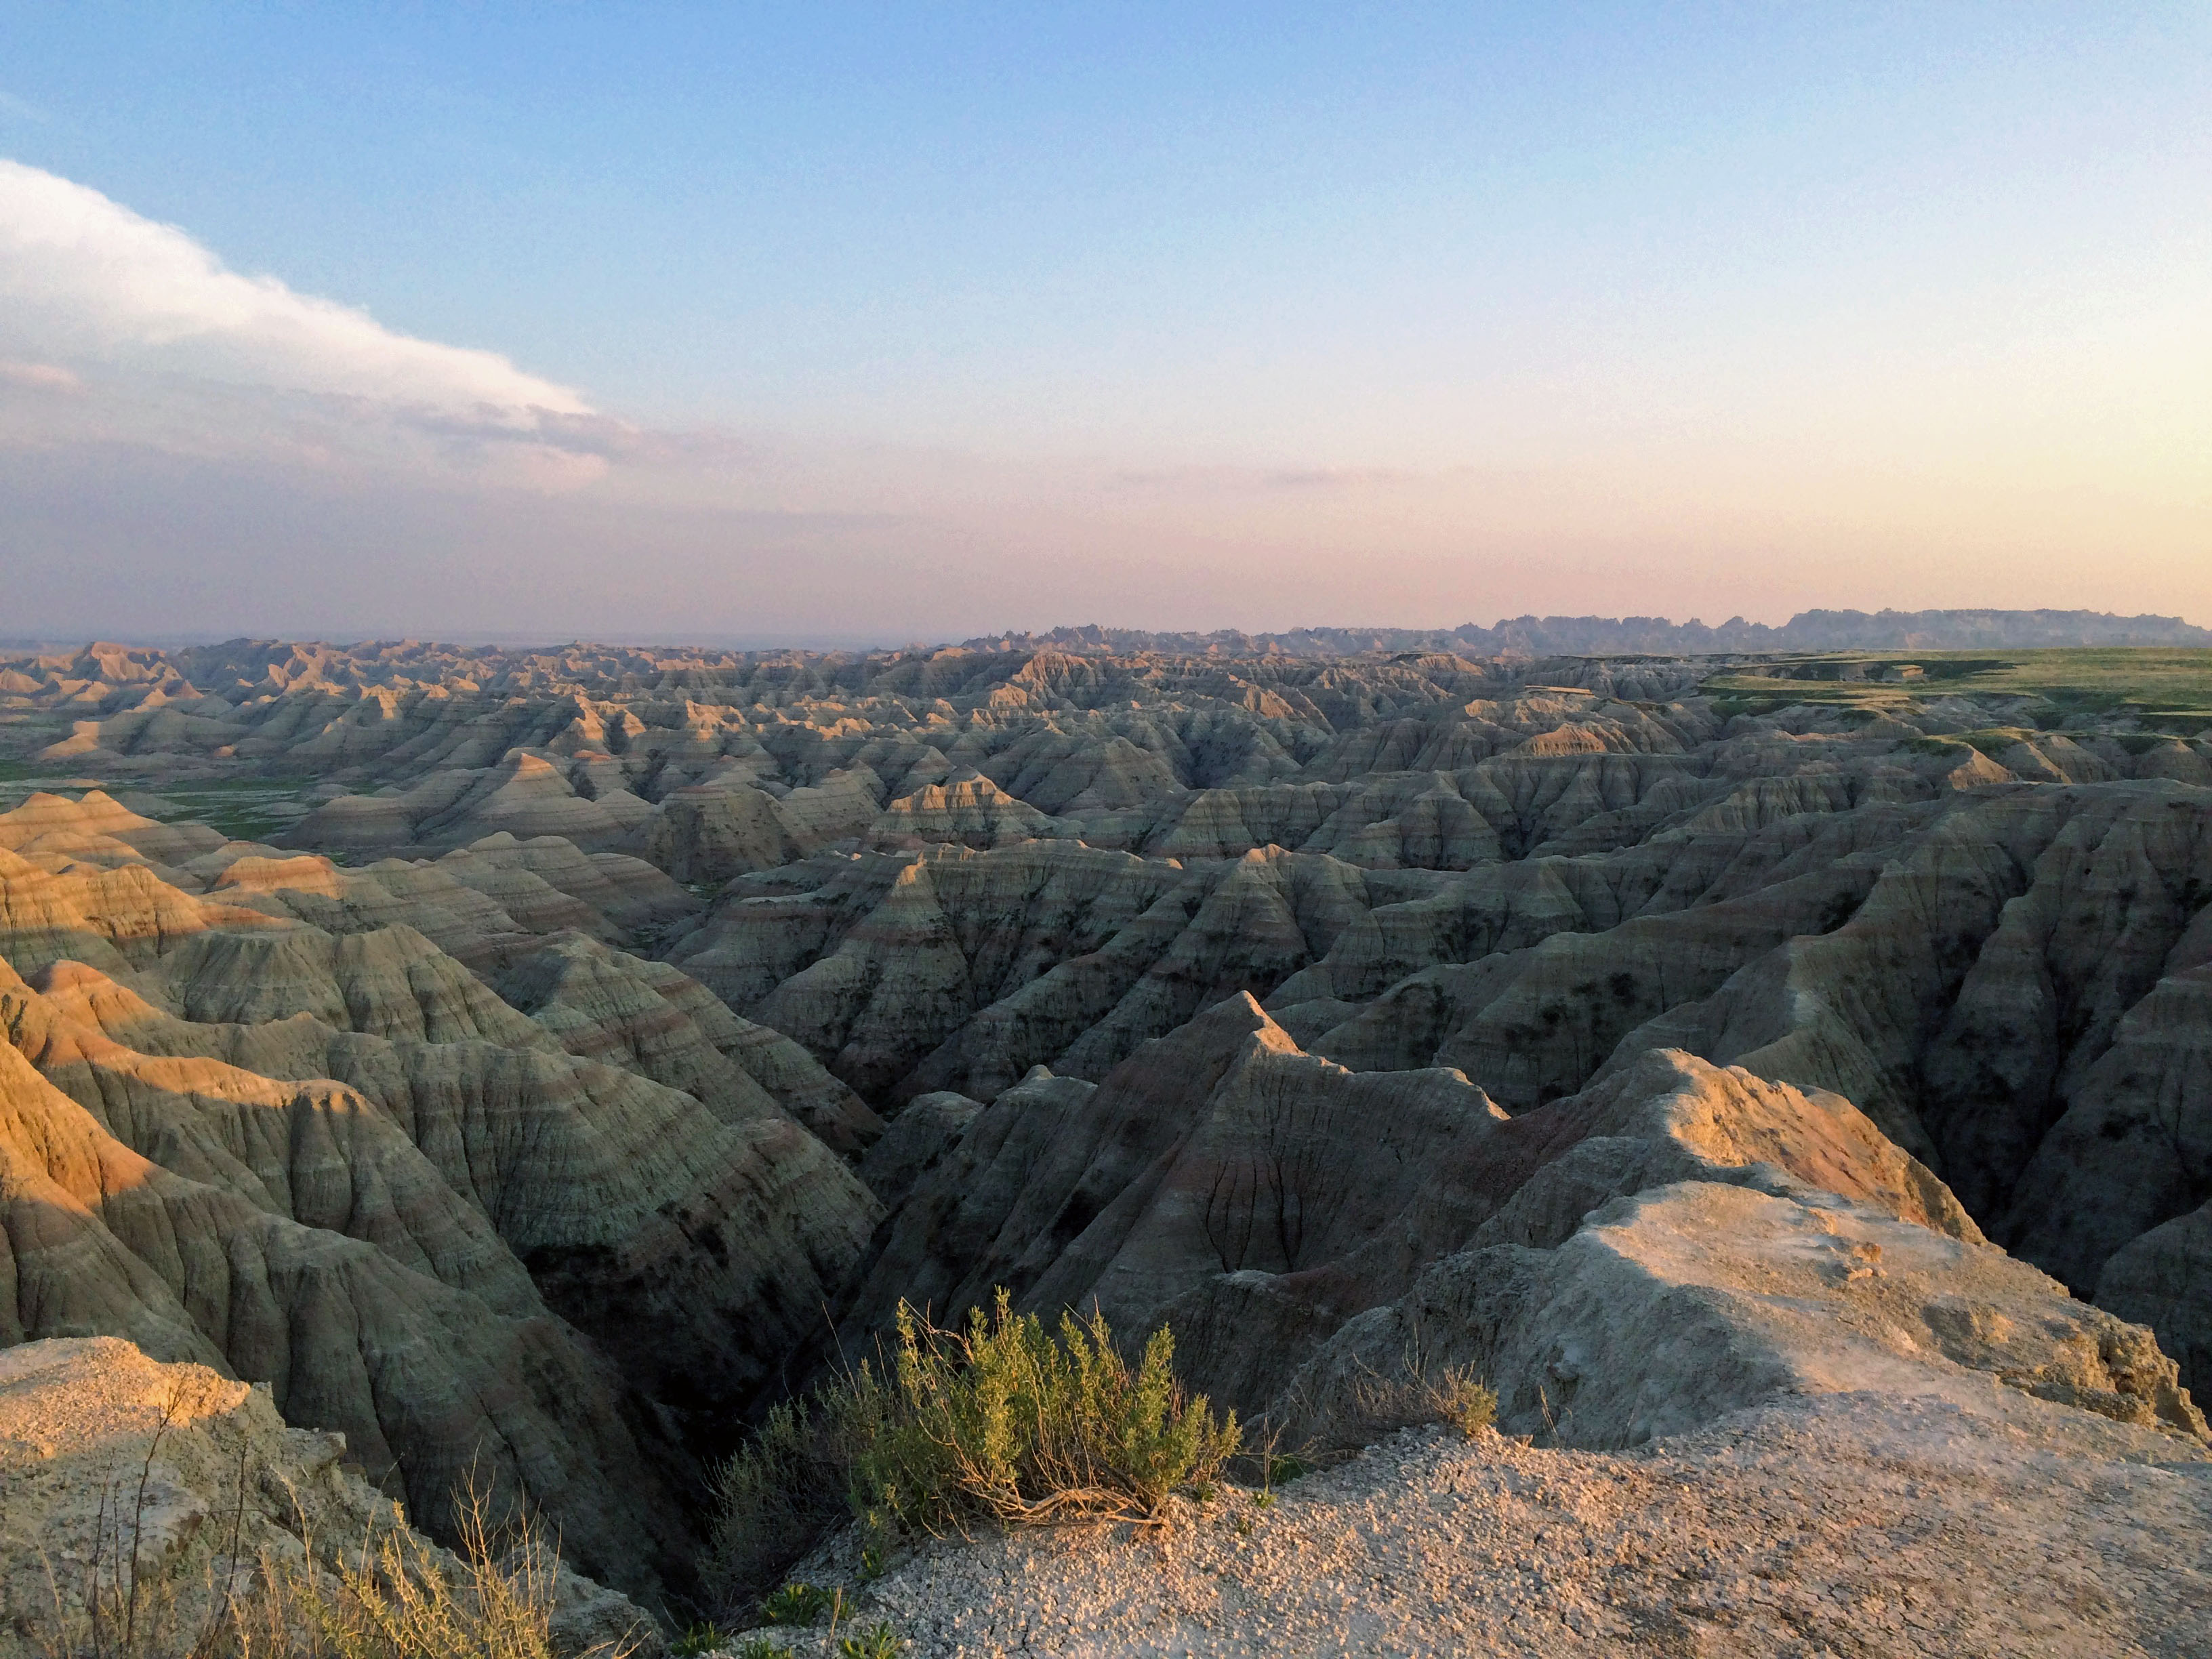 National Parks #1 And #2: Badlands And Wind Cave National Park